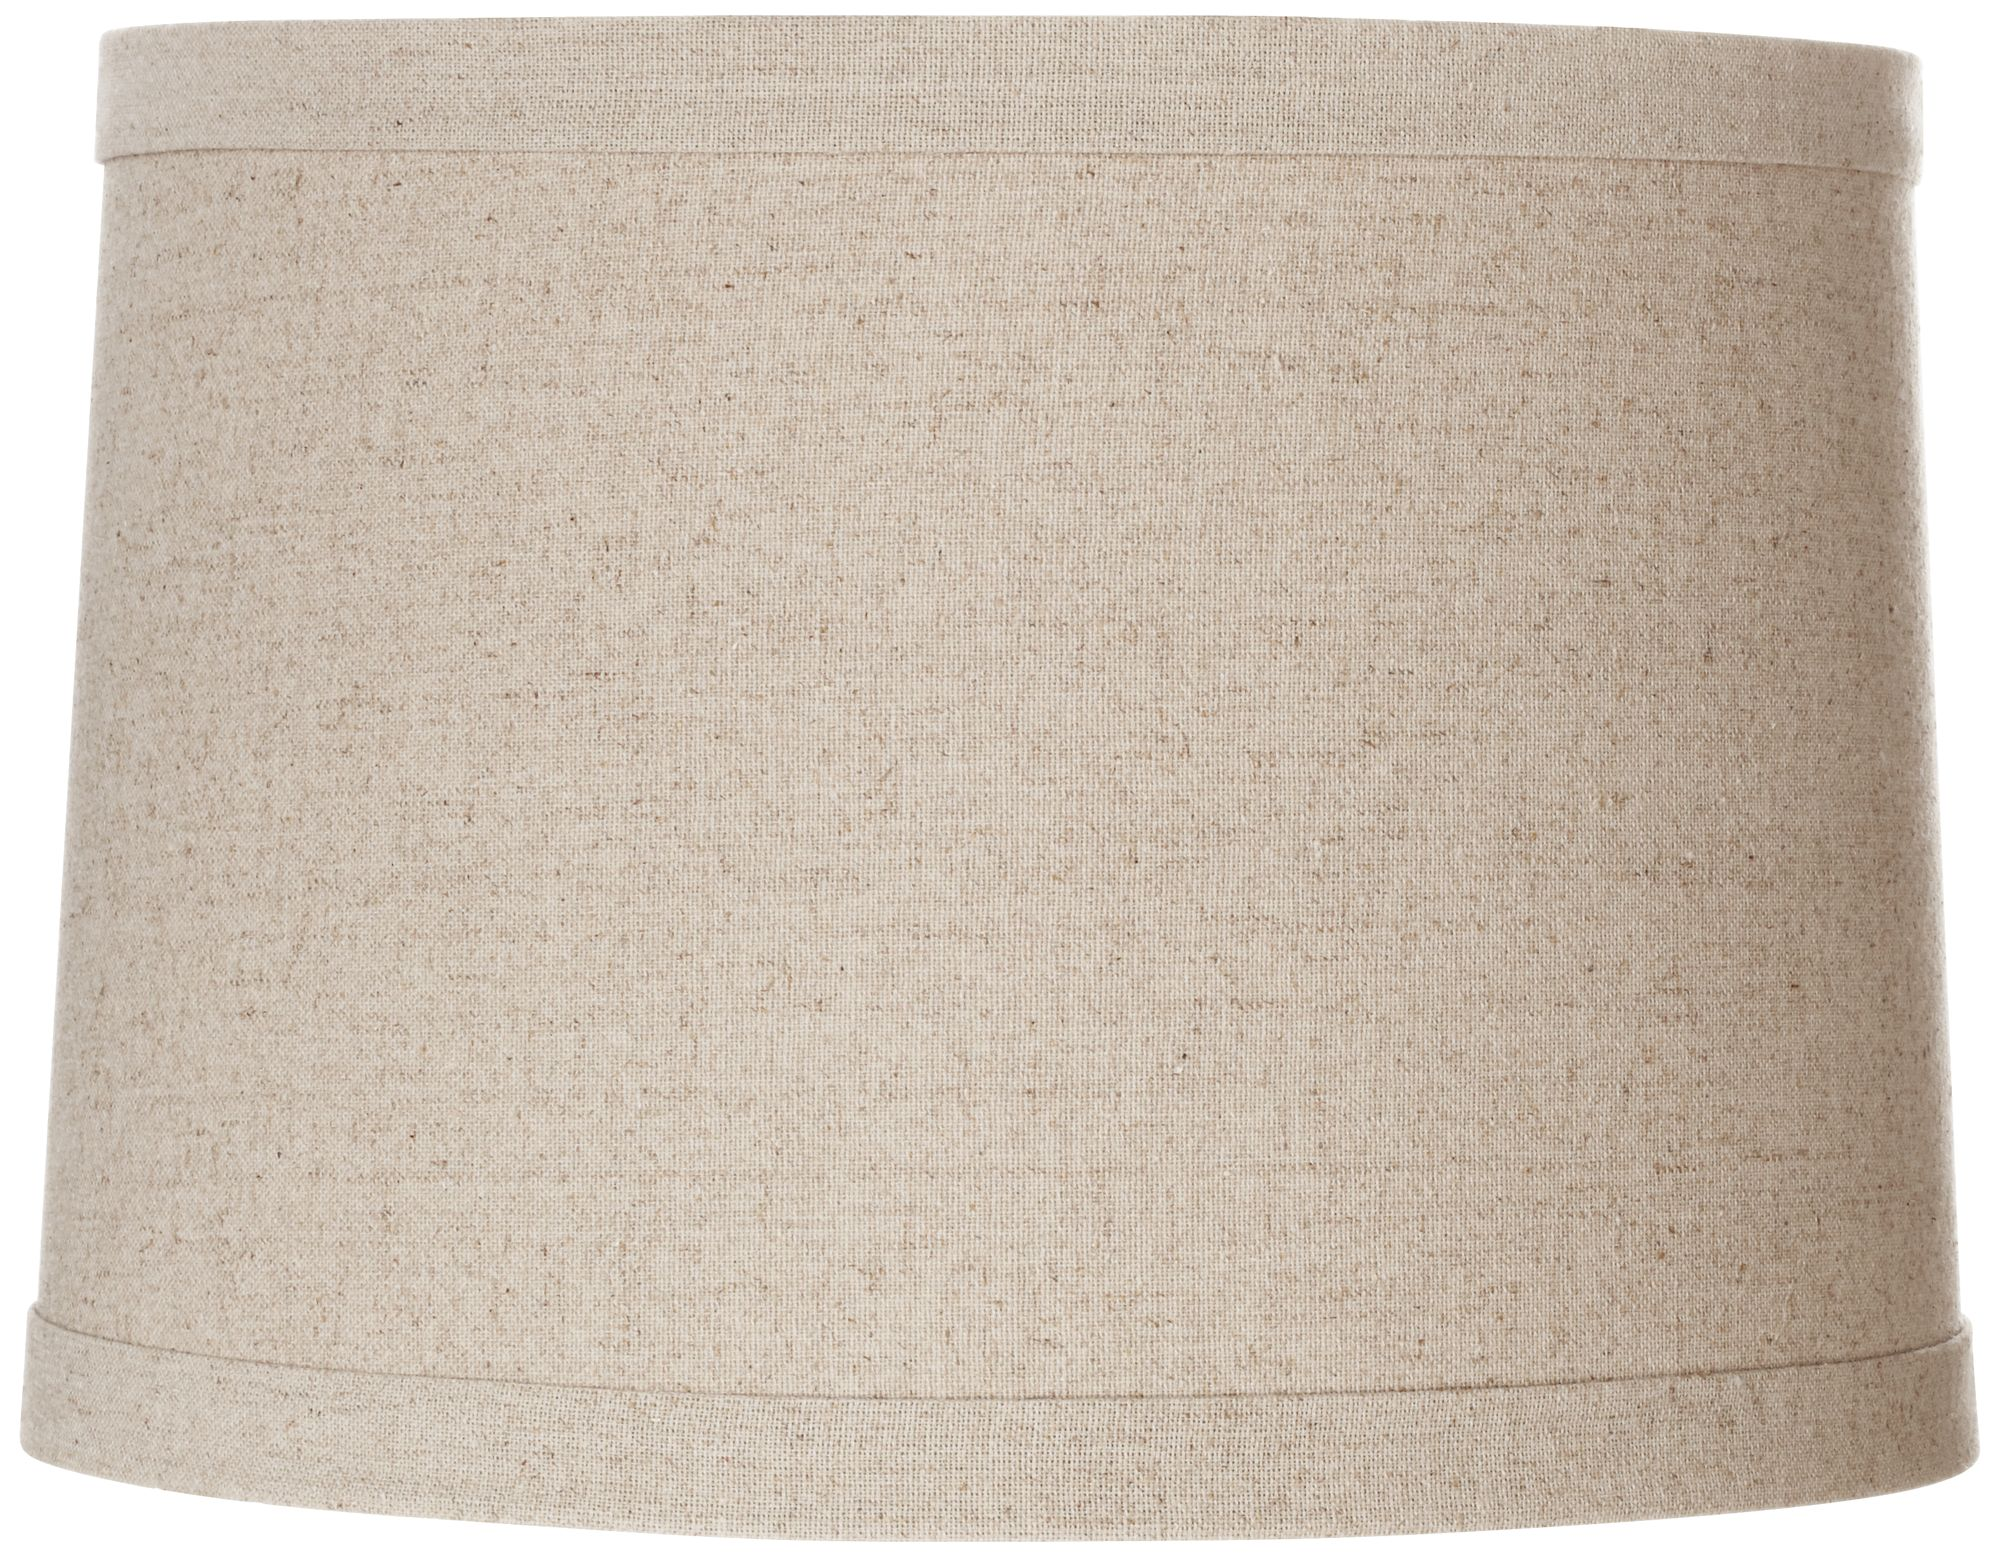 springcrest natural linen drum shade 13x14x10 spider - Drum Shade